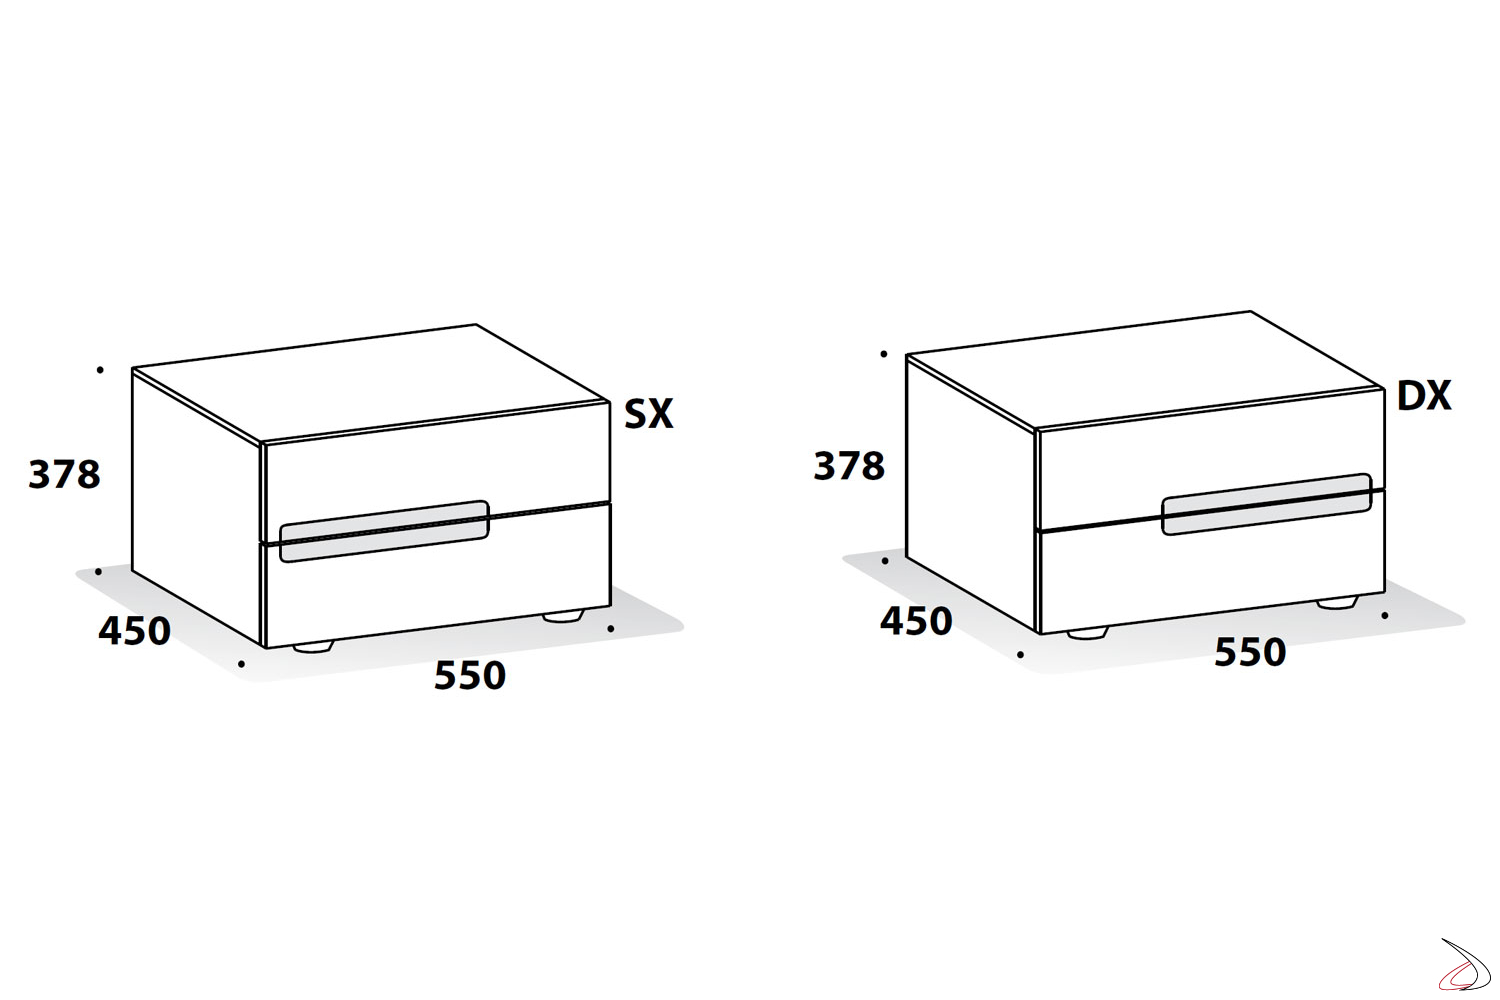 Maered nightstand sizes